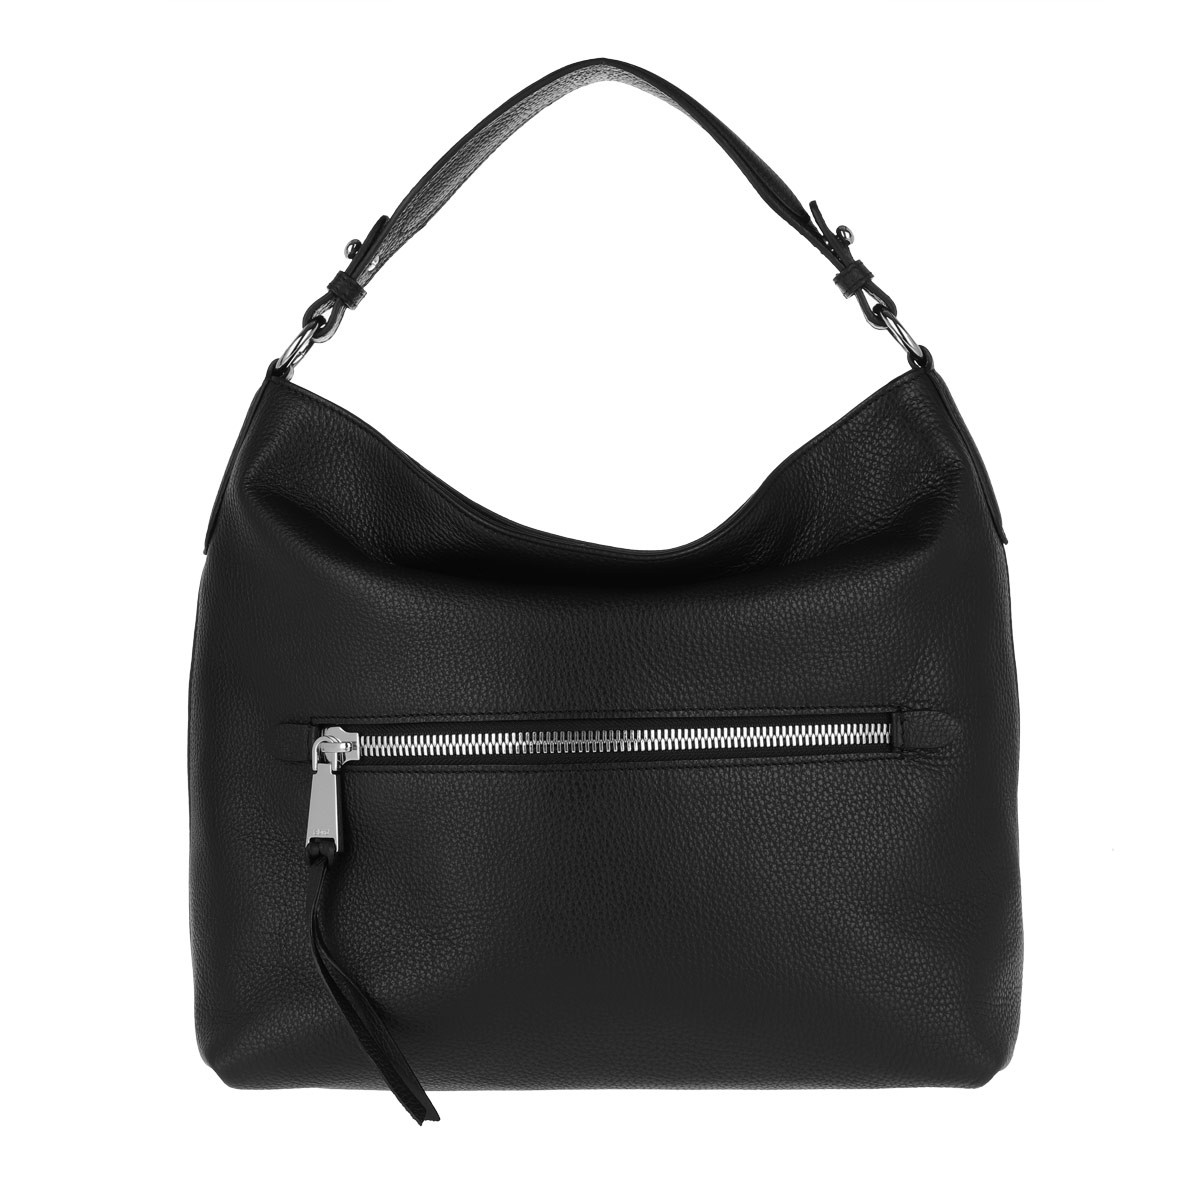 Abro Hobo Bag - Beutel Linna Small Black Nickel - in schwarz - für Damen